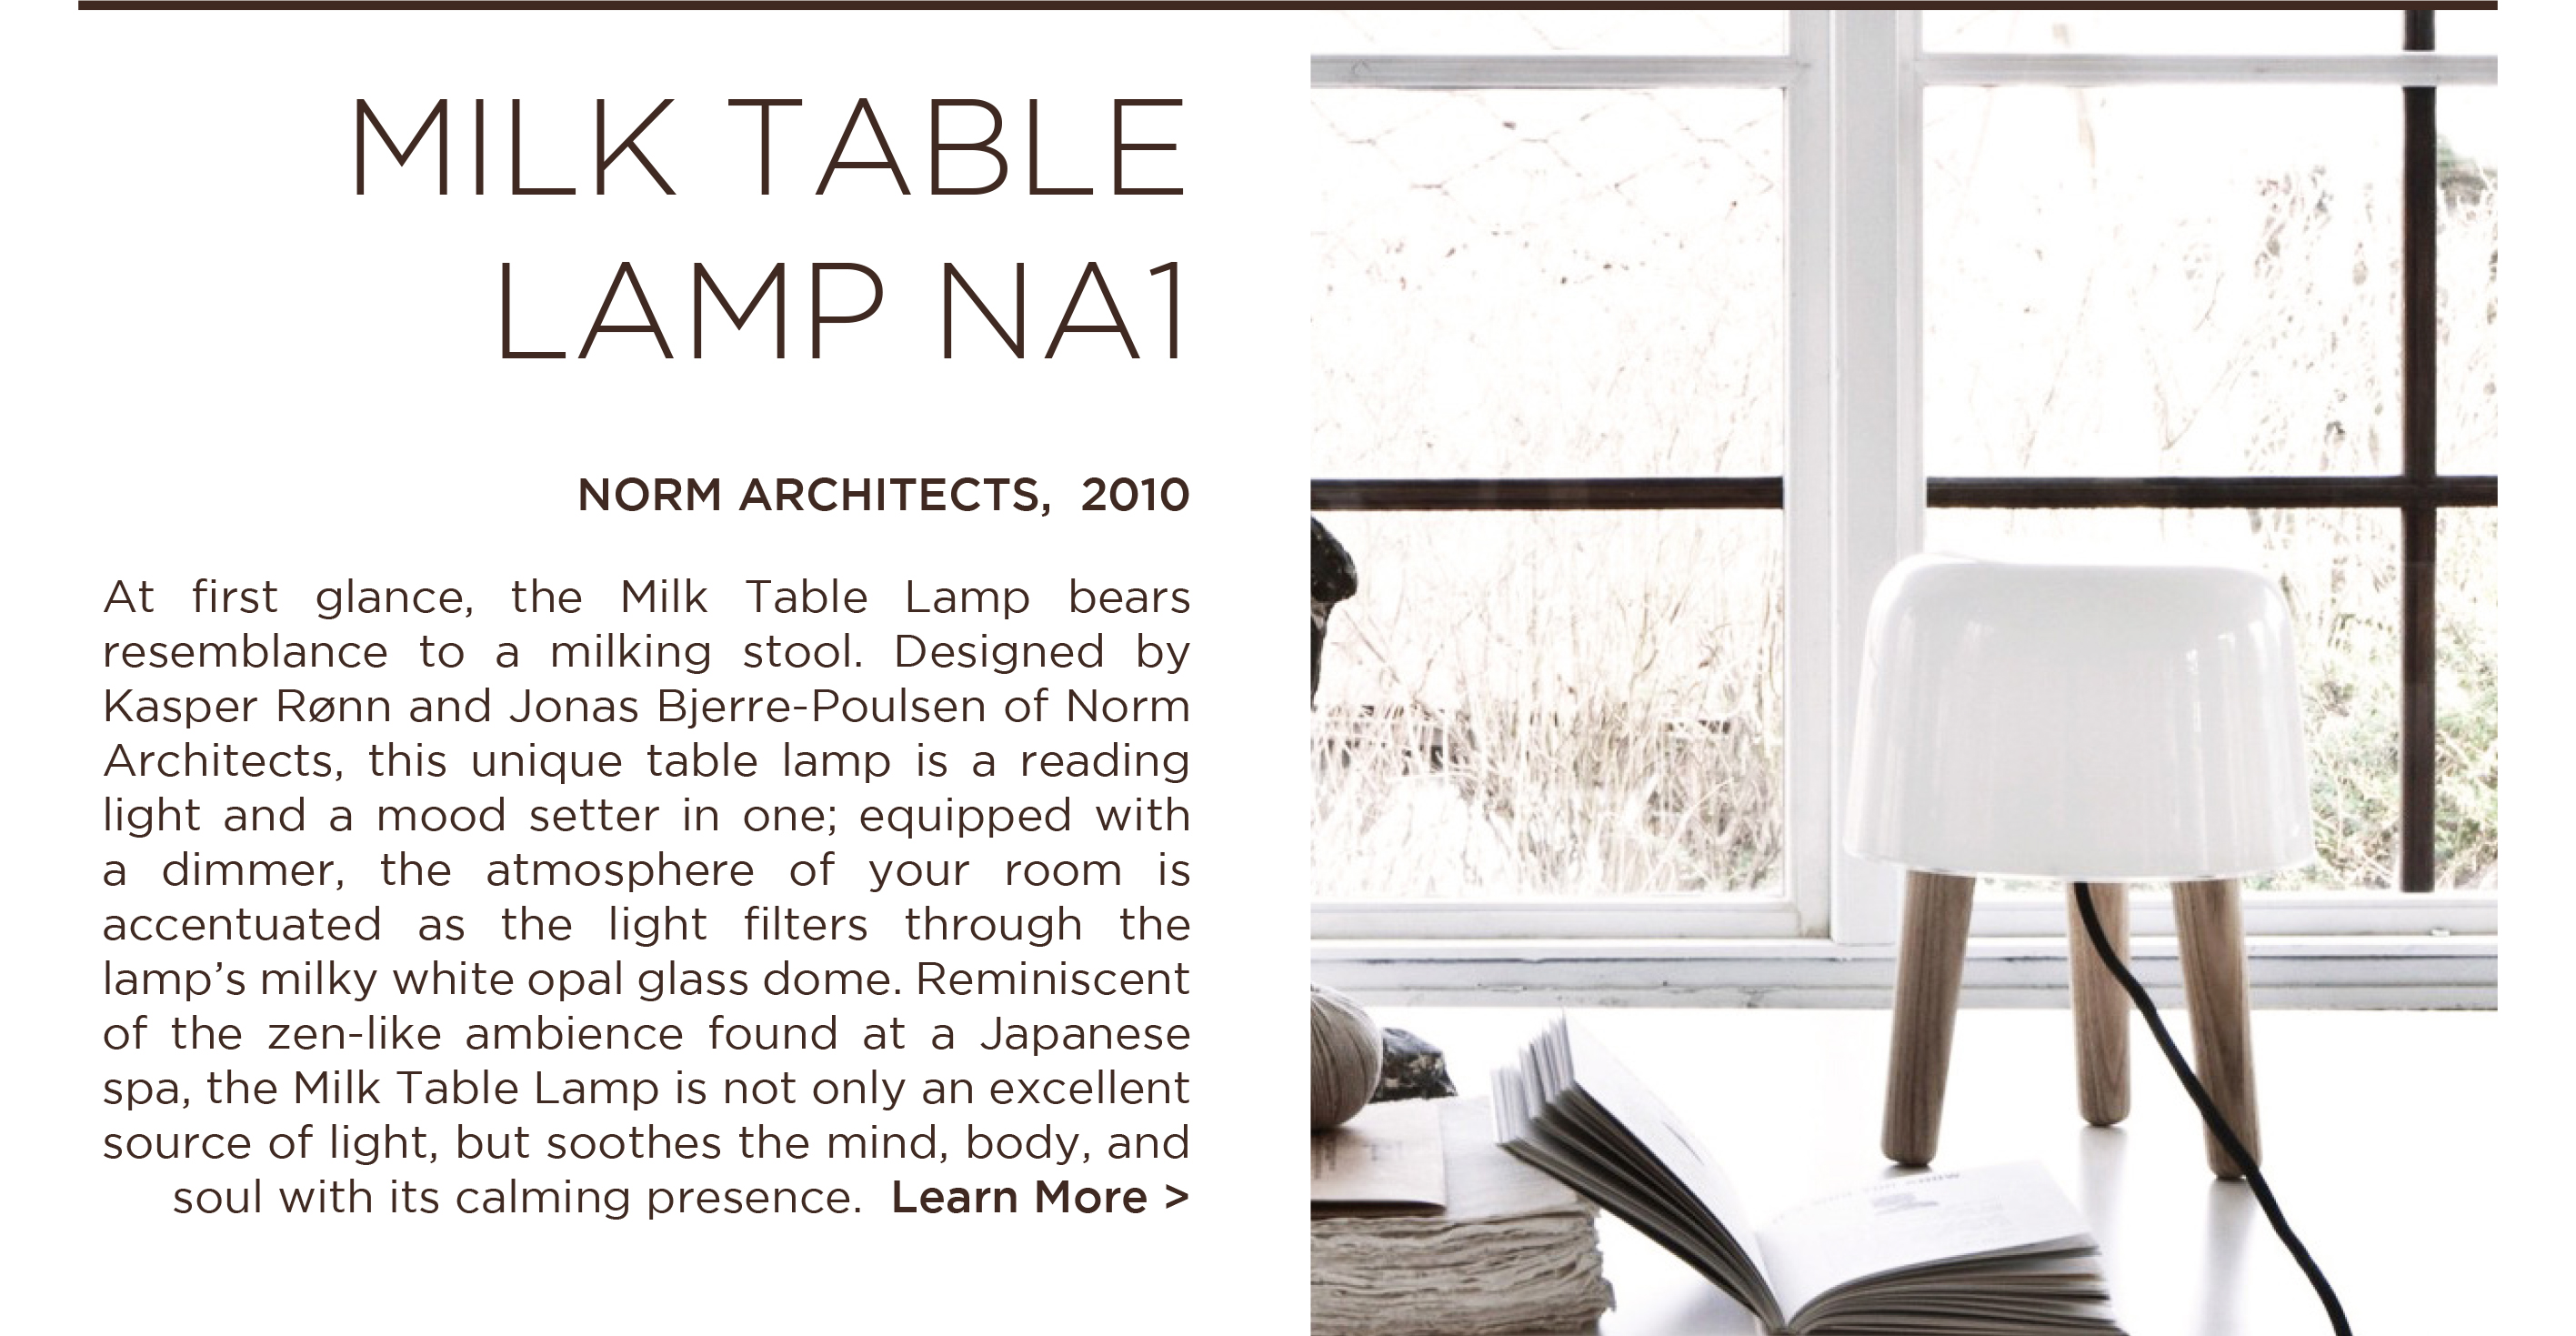 NA 1 milk table lamp norm architects andtradition copenhagen danish designer lighting suite ny